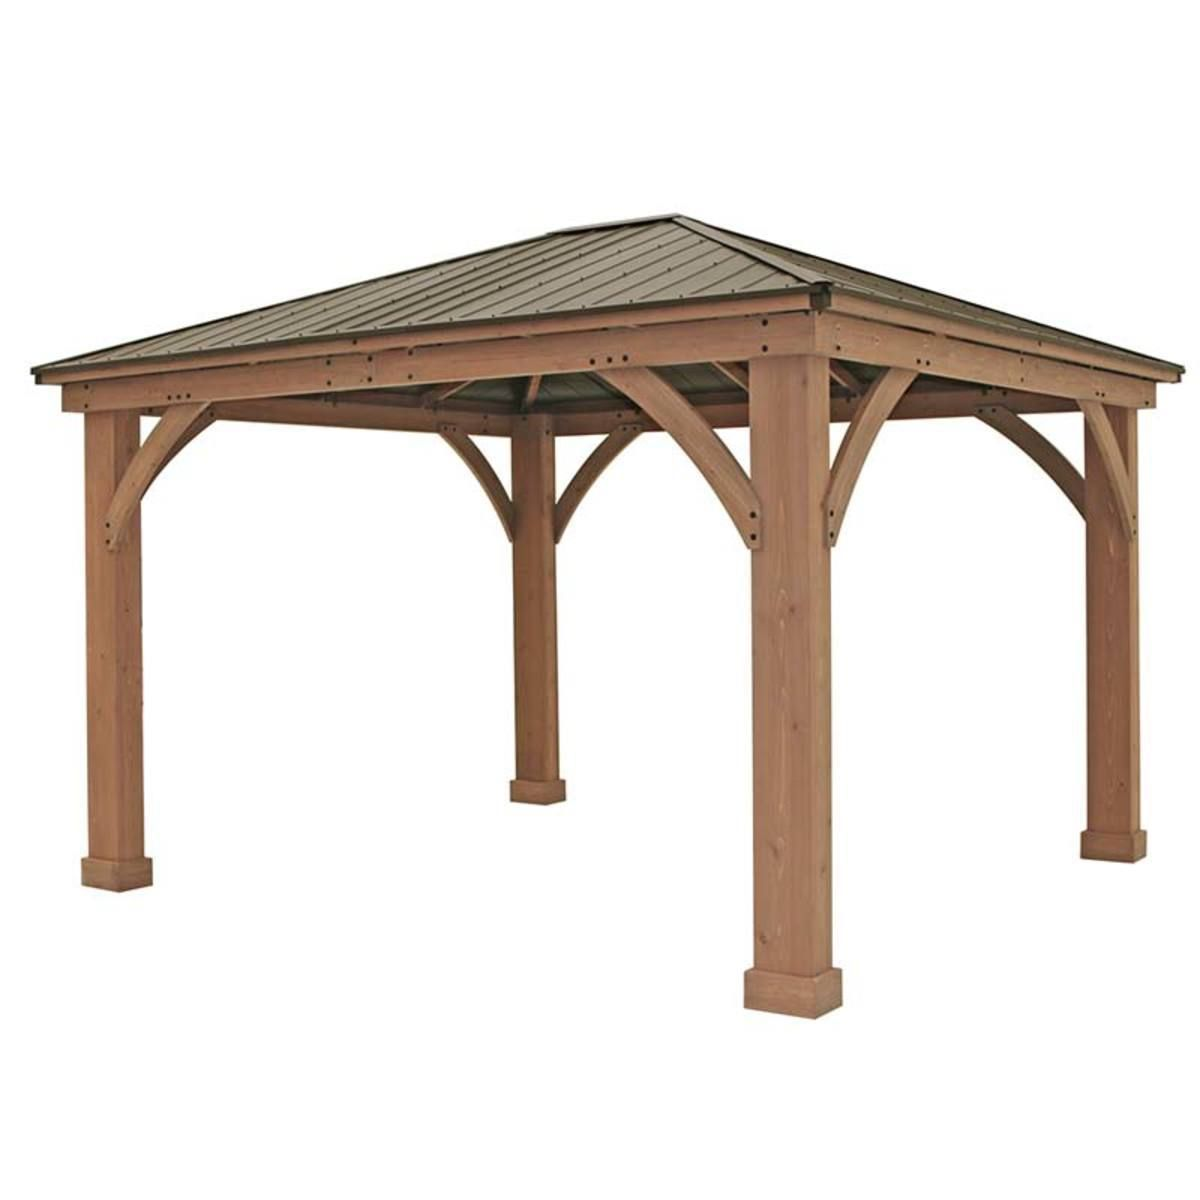 Yardistry 14ft X 12ft 4 3 X 3 7m Cedar Gazebo With Aluminium Roof Costco Uk Outdoor Pergola Pergola Aluminum Roof